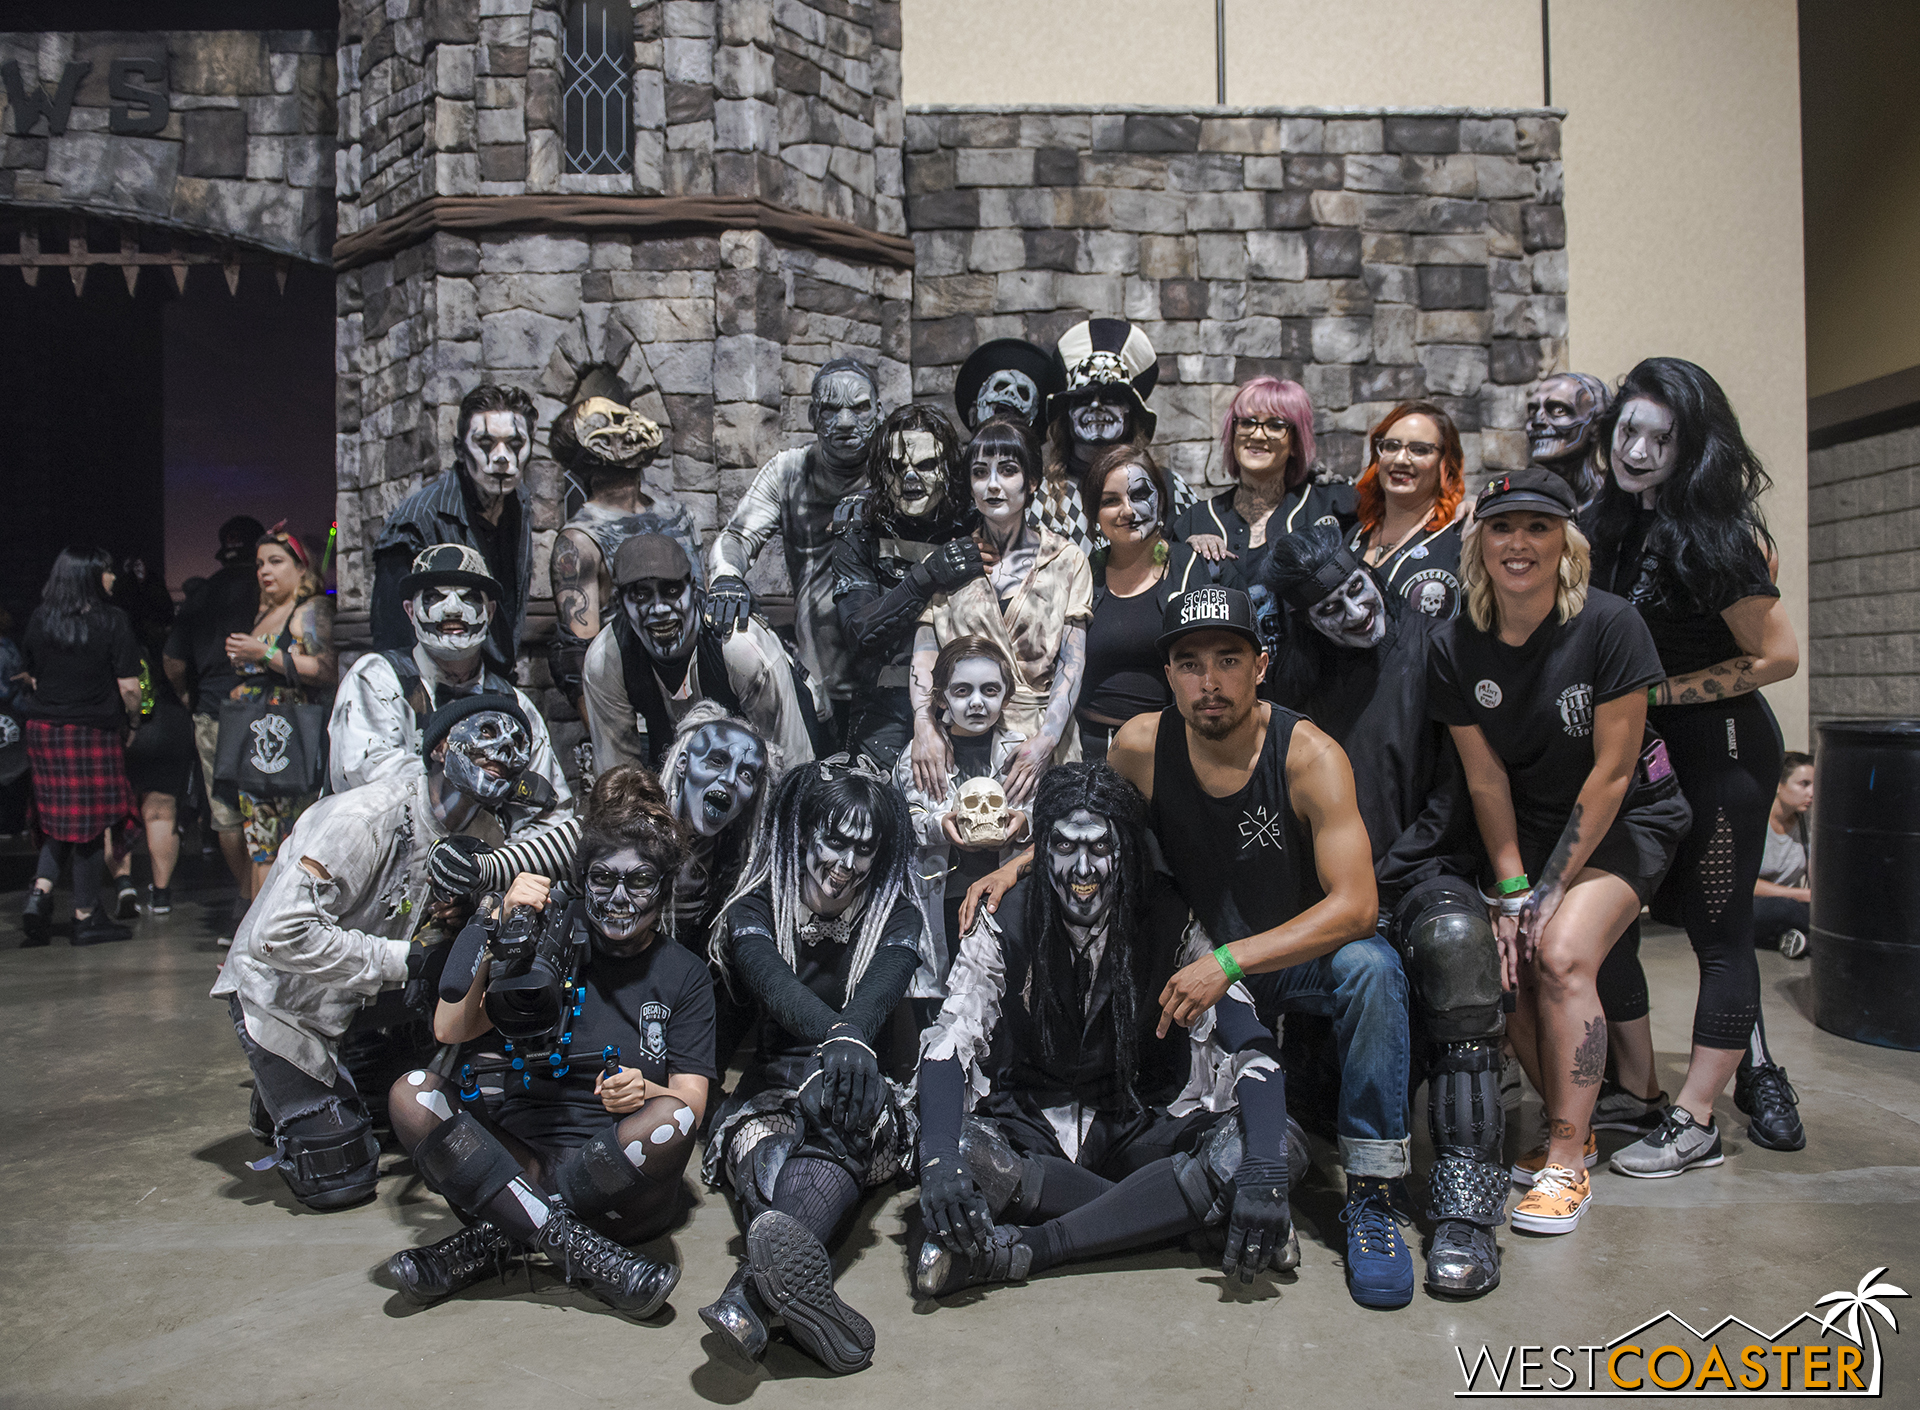 A group photo in front of the Castle Frankenstein entryway by CalHaunts.